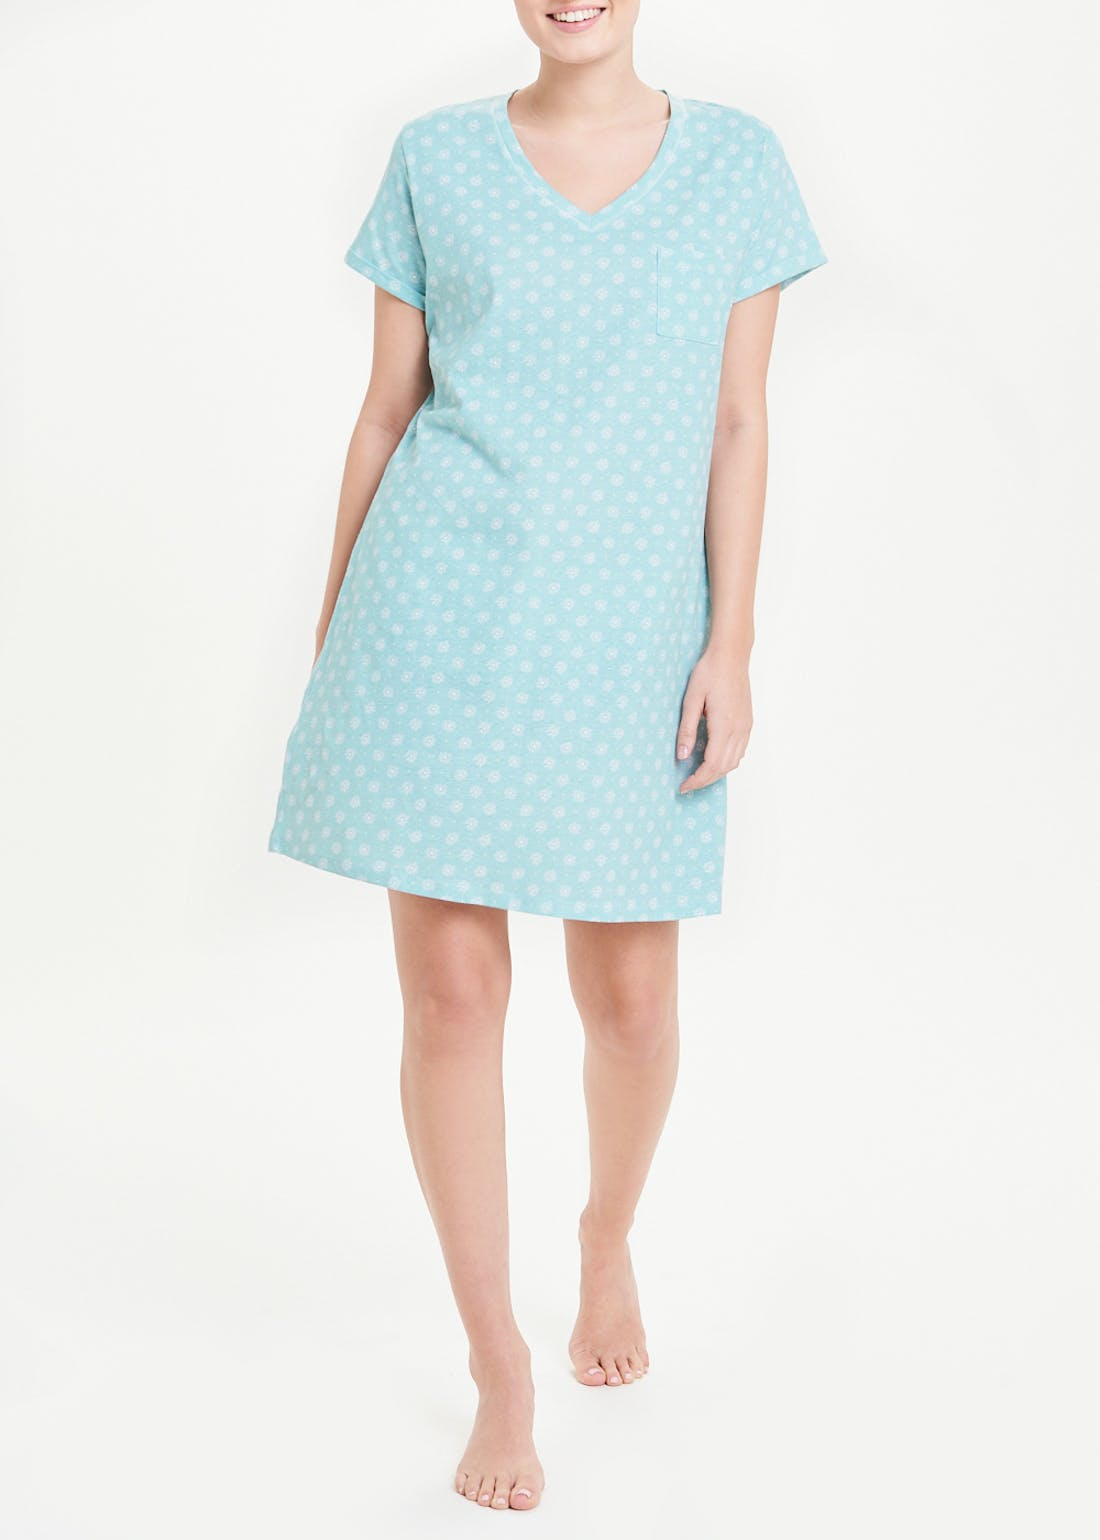 V-Neck Pocket Printed Nightie